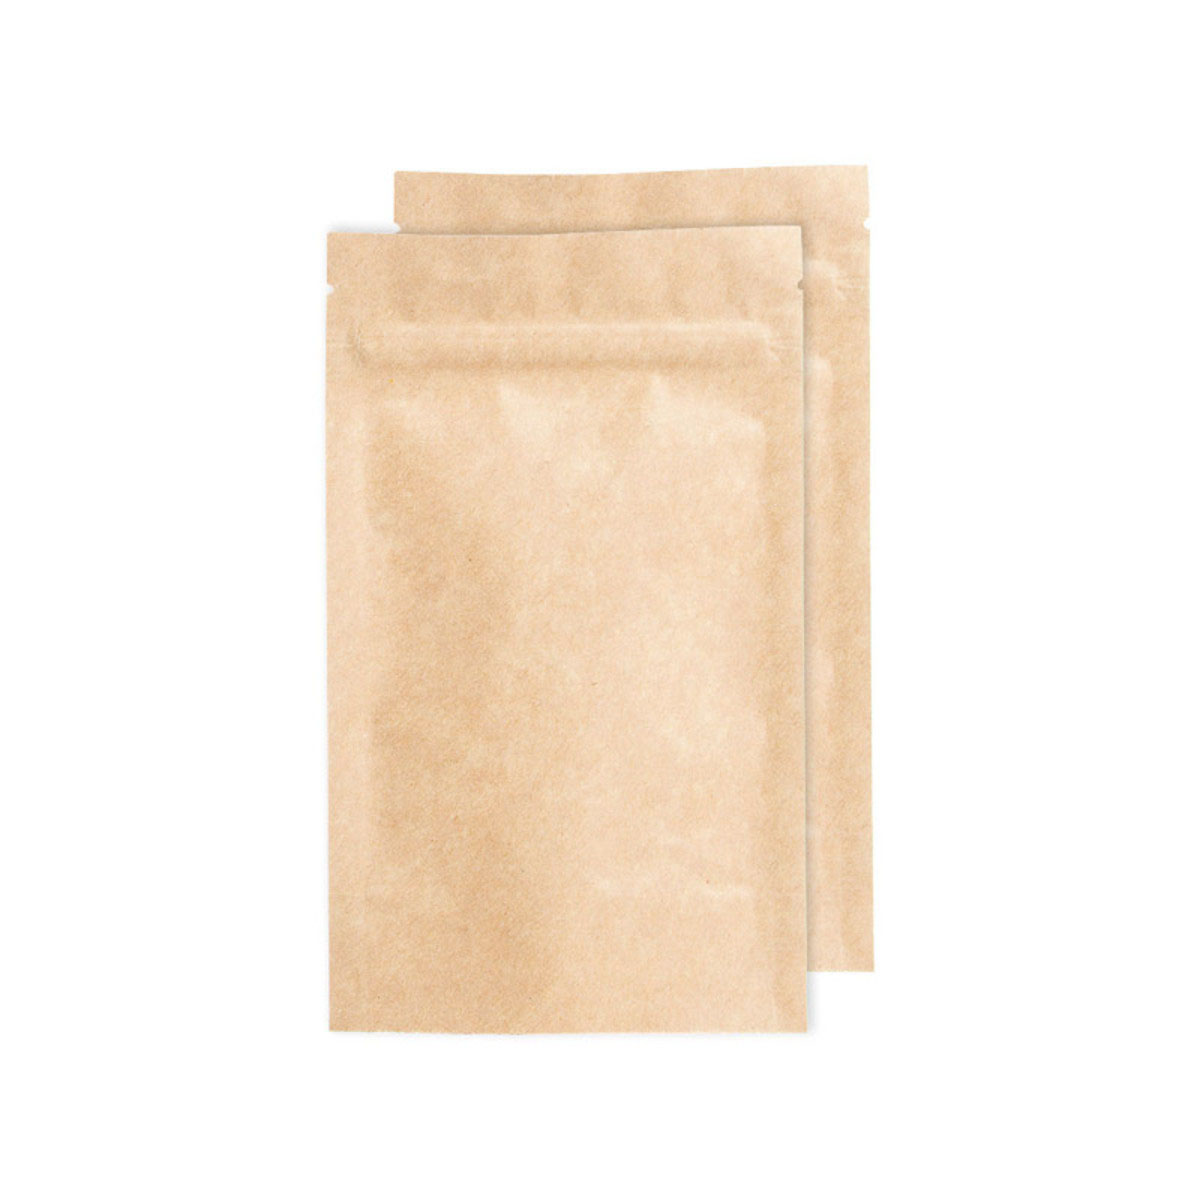 Quarter Ounce Kraft Opaque Barrier Bags (100 Qty.)